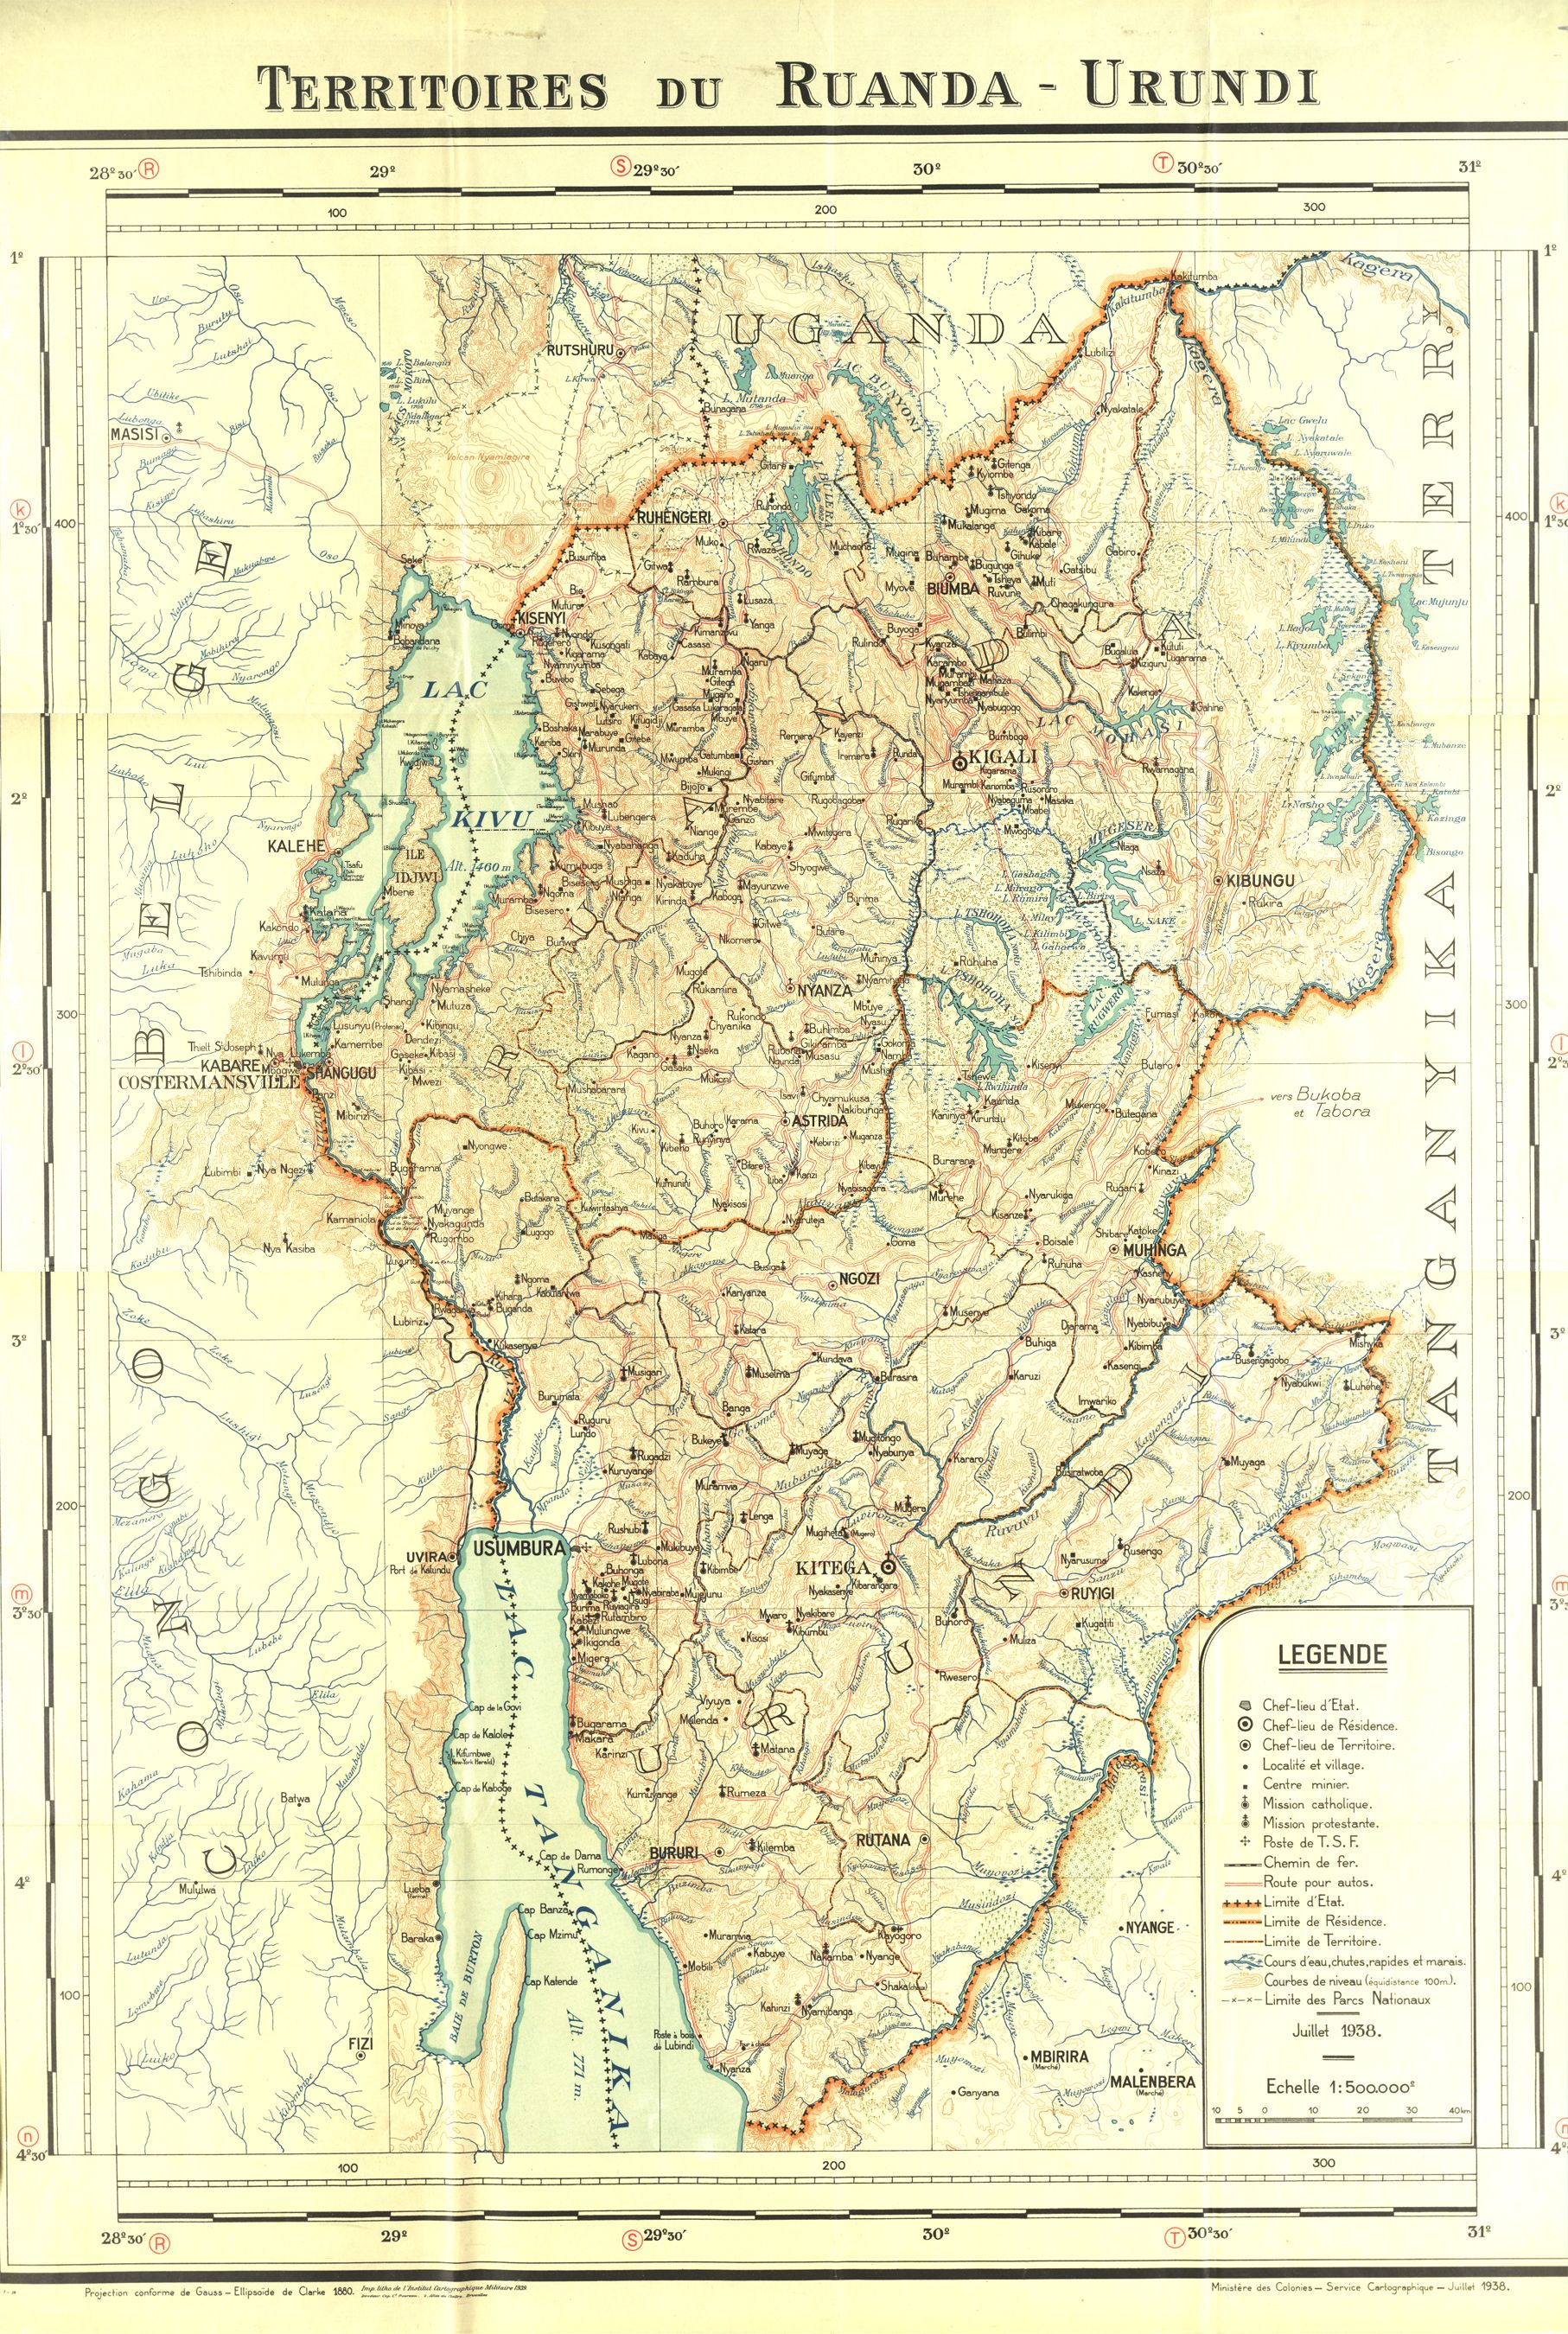 Extremely Detailed Map Of Belgian Rwanda Burundi 1938 Map